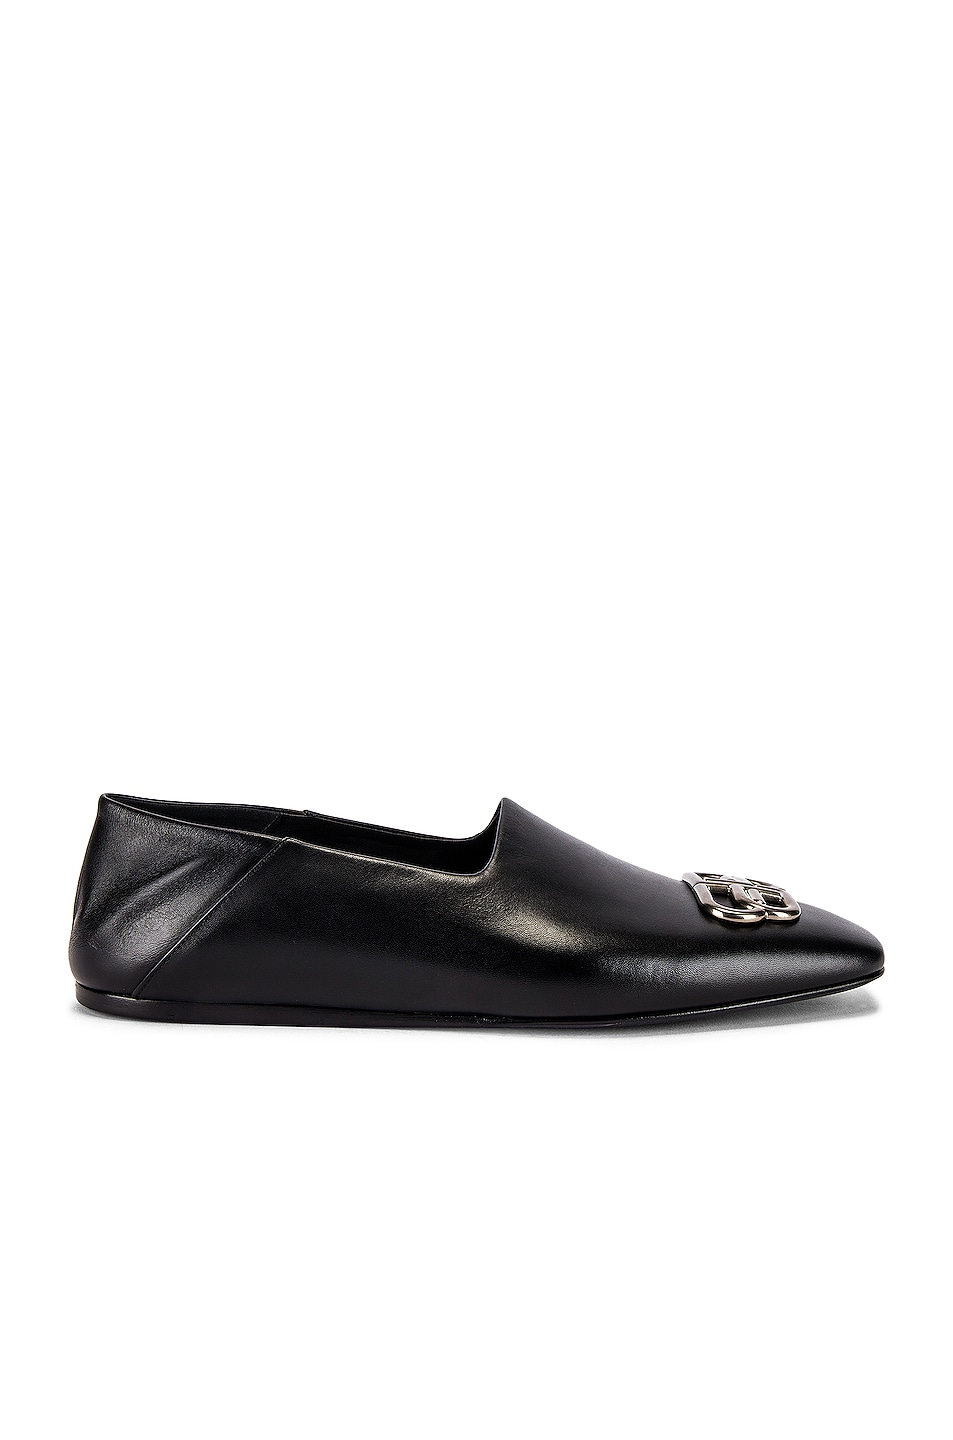 Image 6 of Balenciaga Cosy BB Loafer F005 in Black & Nikel